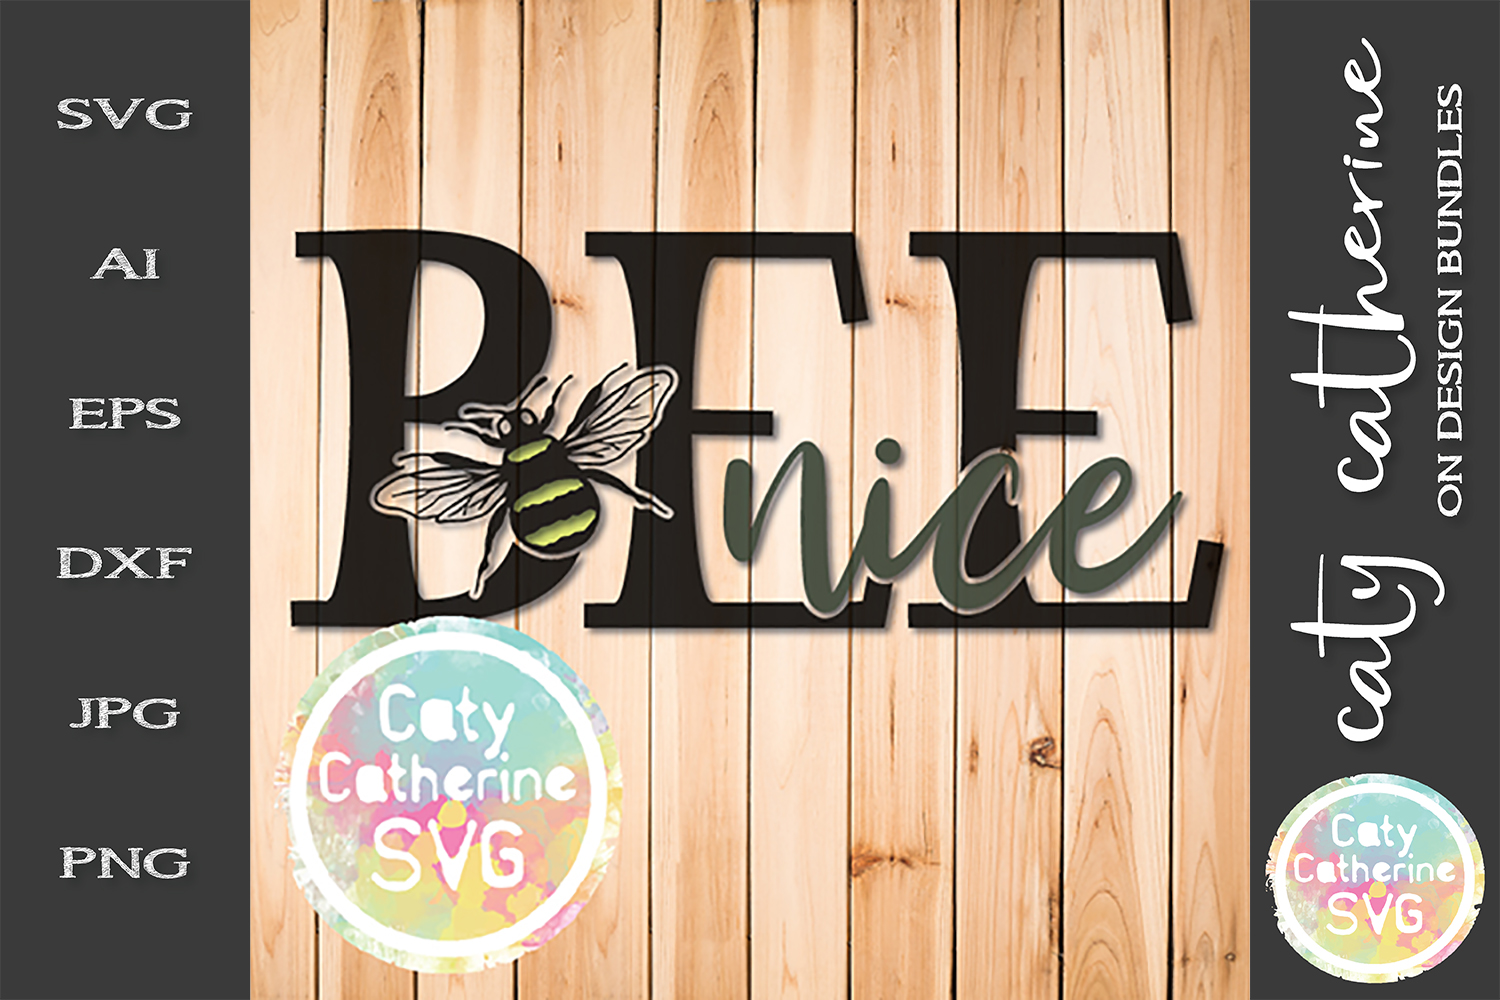 Be Nice Bumble Bee Inspirational Quote SVG Cut File example image 1